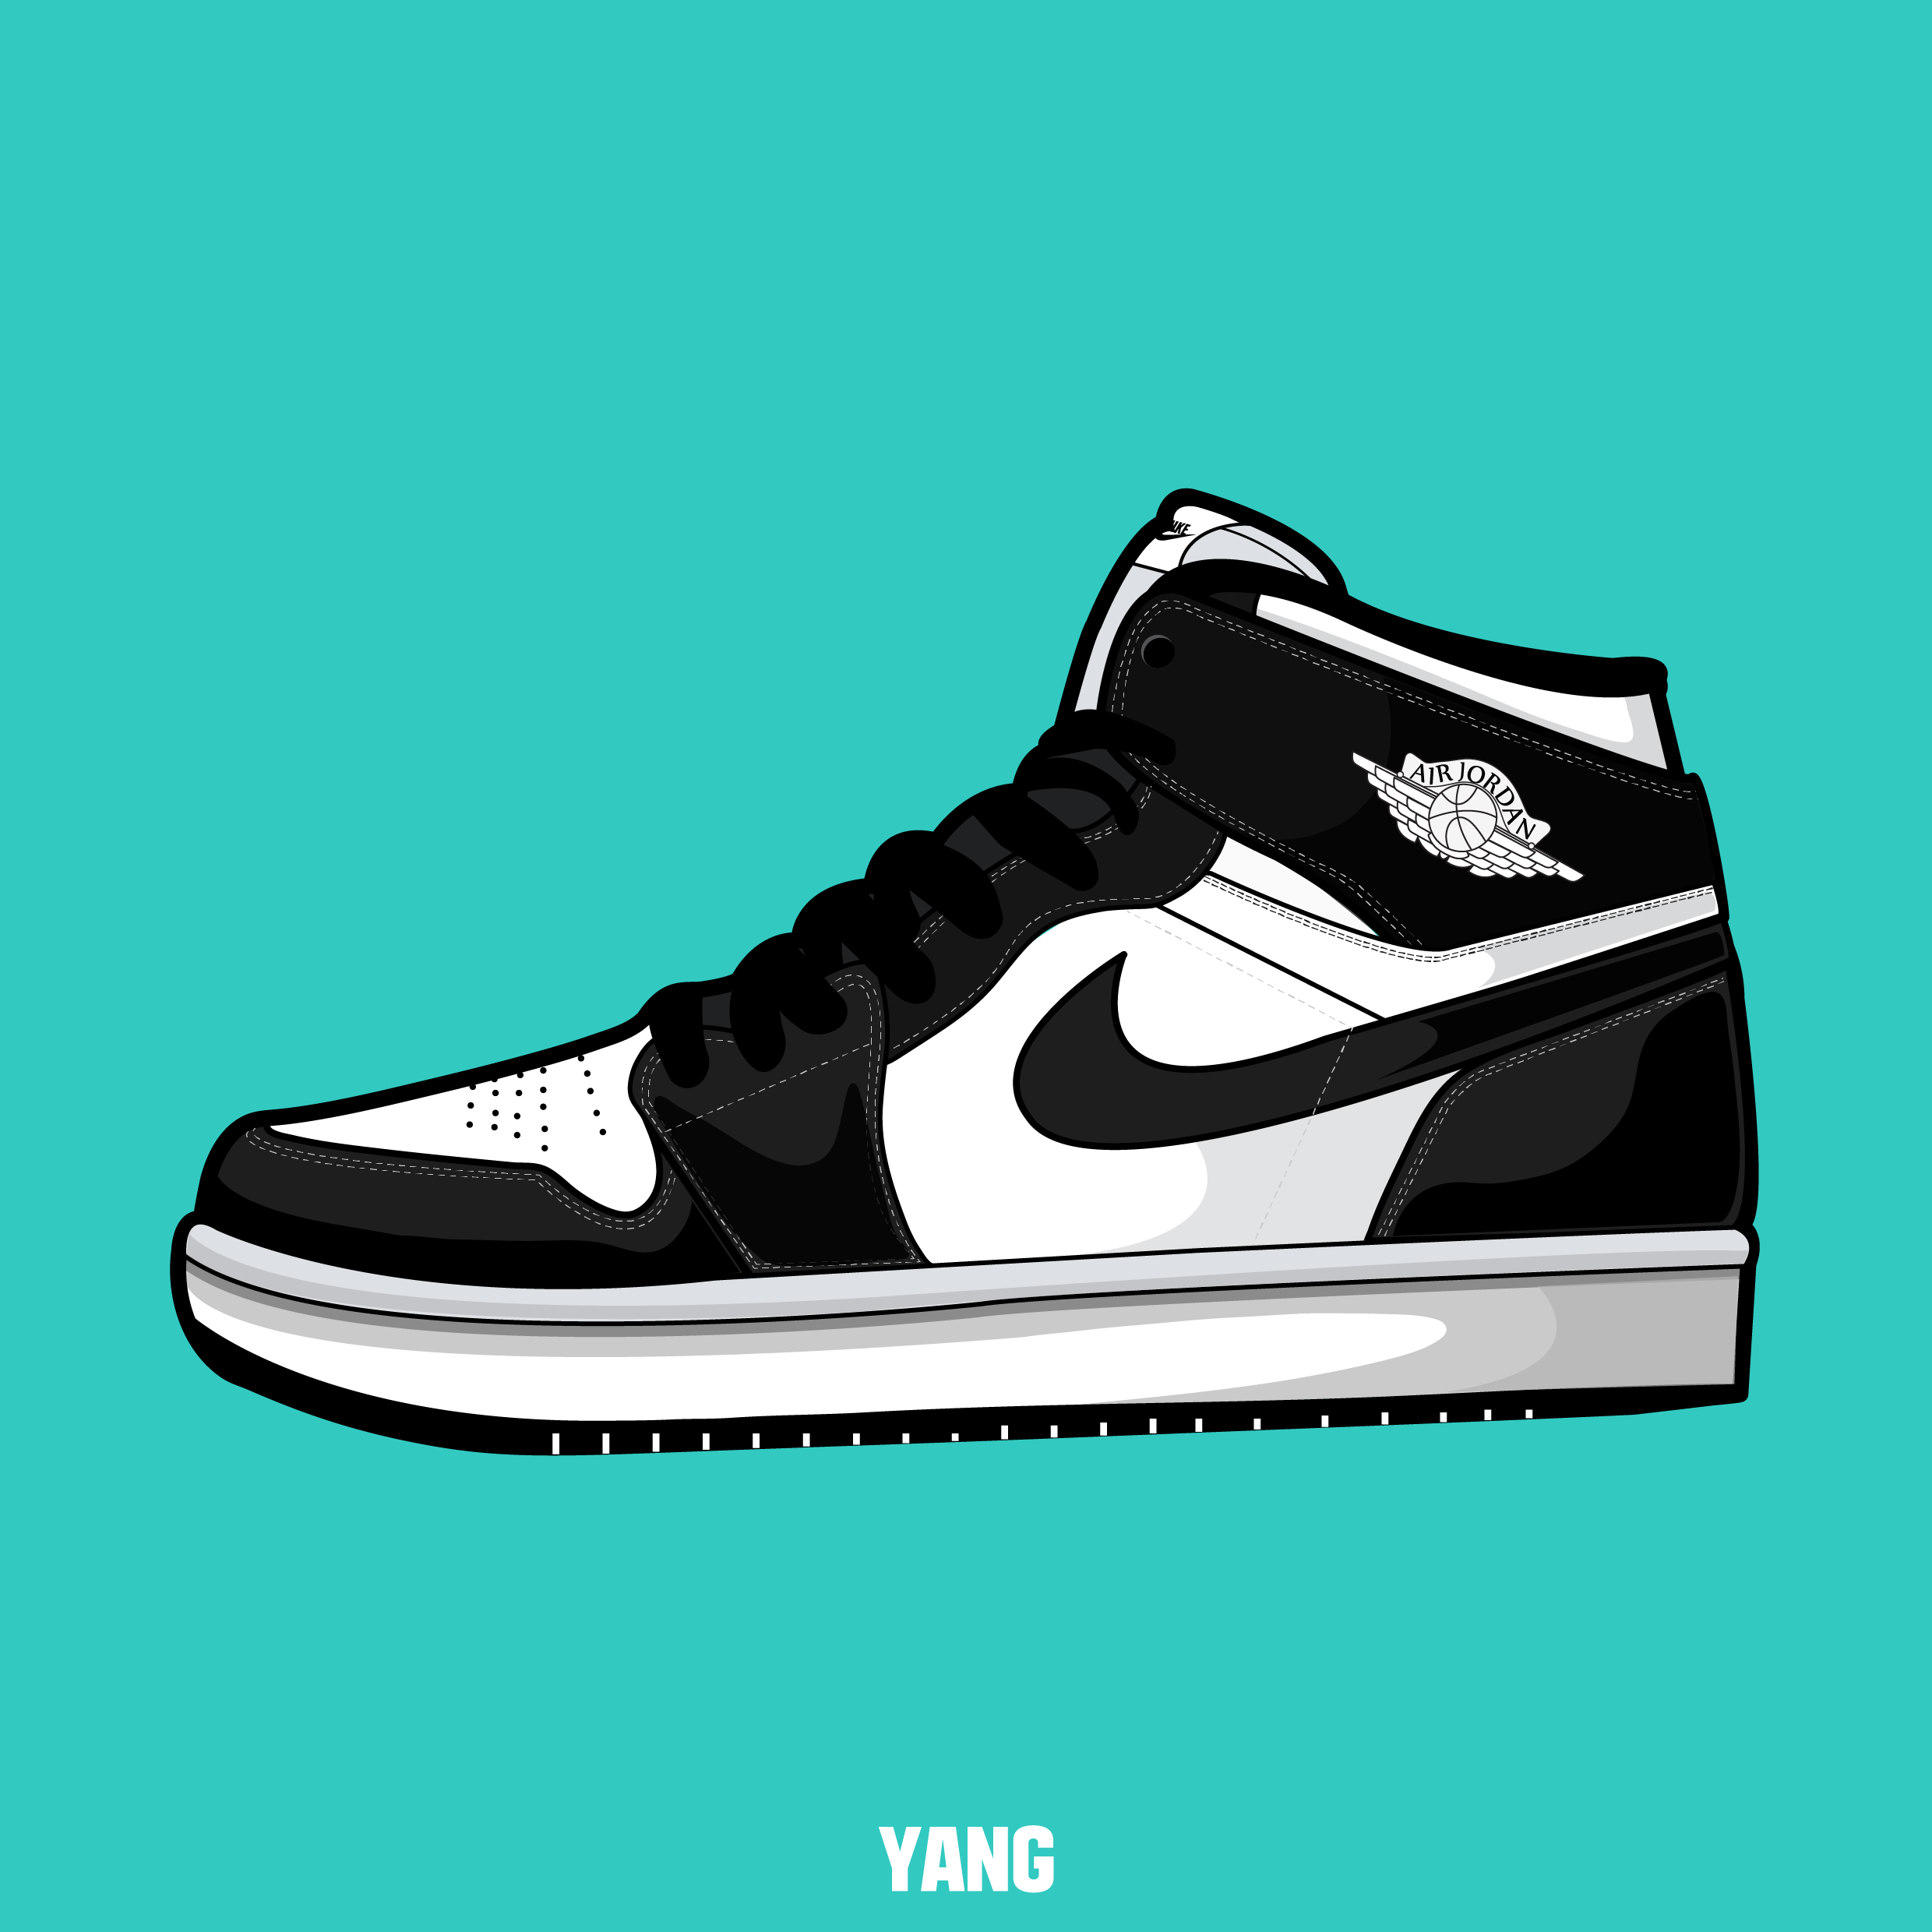 Drawn up air jordan 1 black